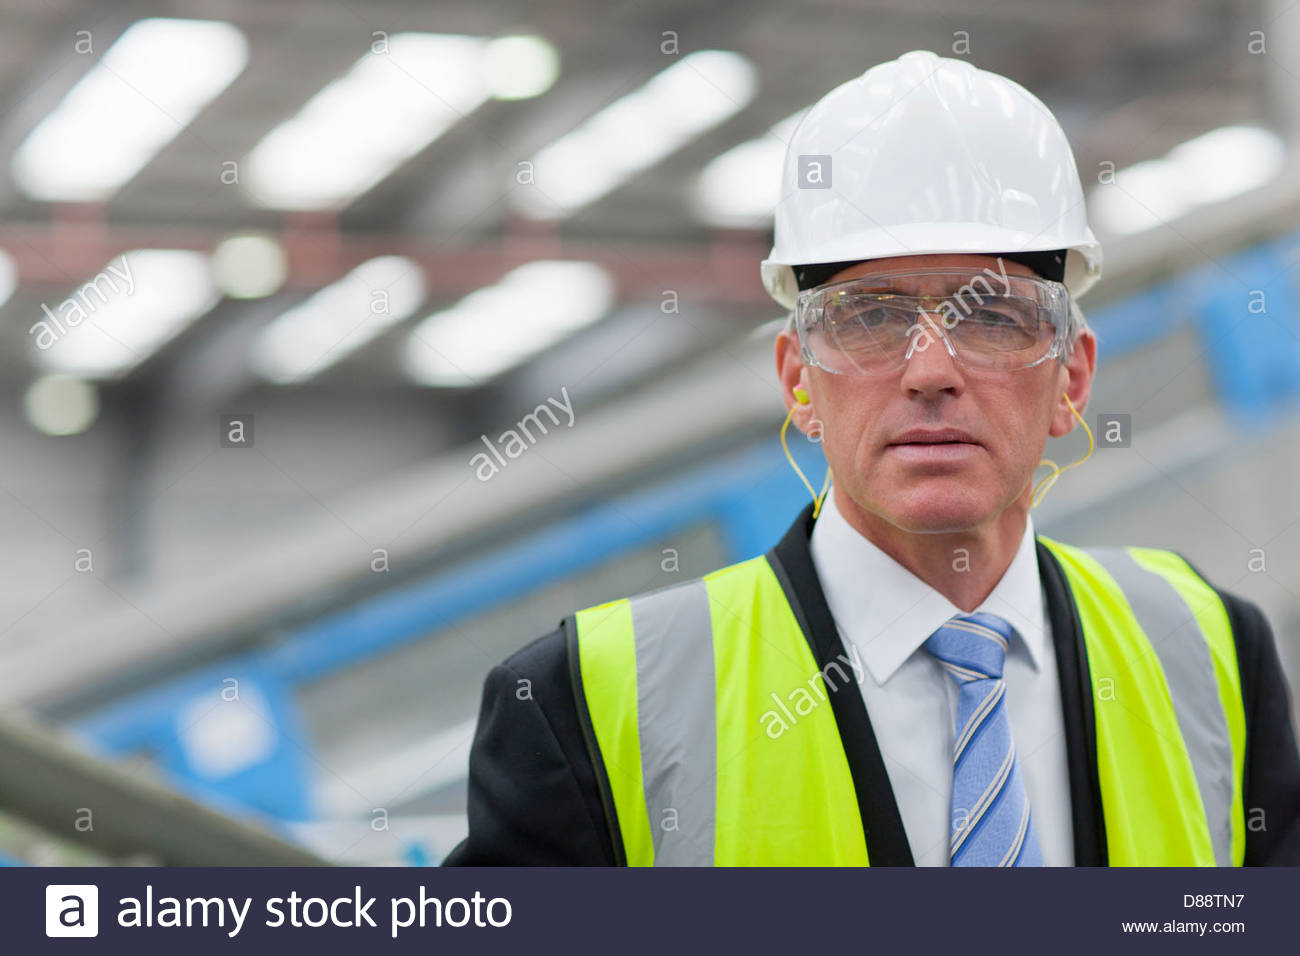 Close up portrait of serious businessman wearing hard-hat, goggles and reflector-vest in recycling plant - Stock Image